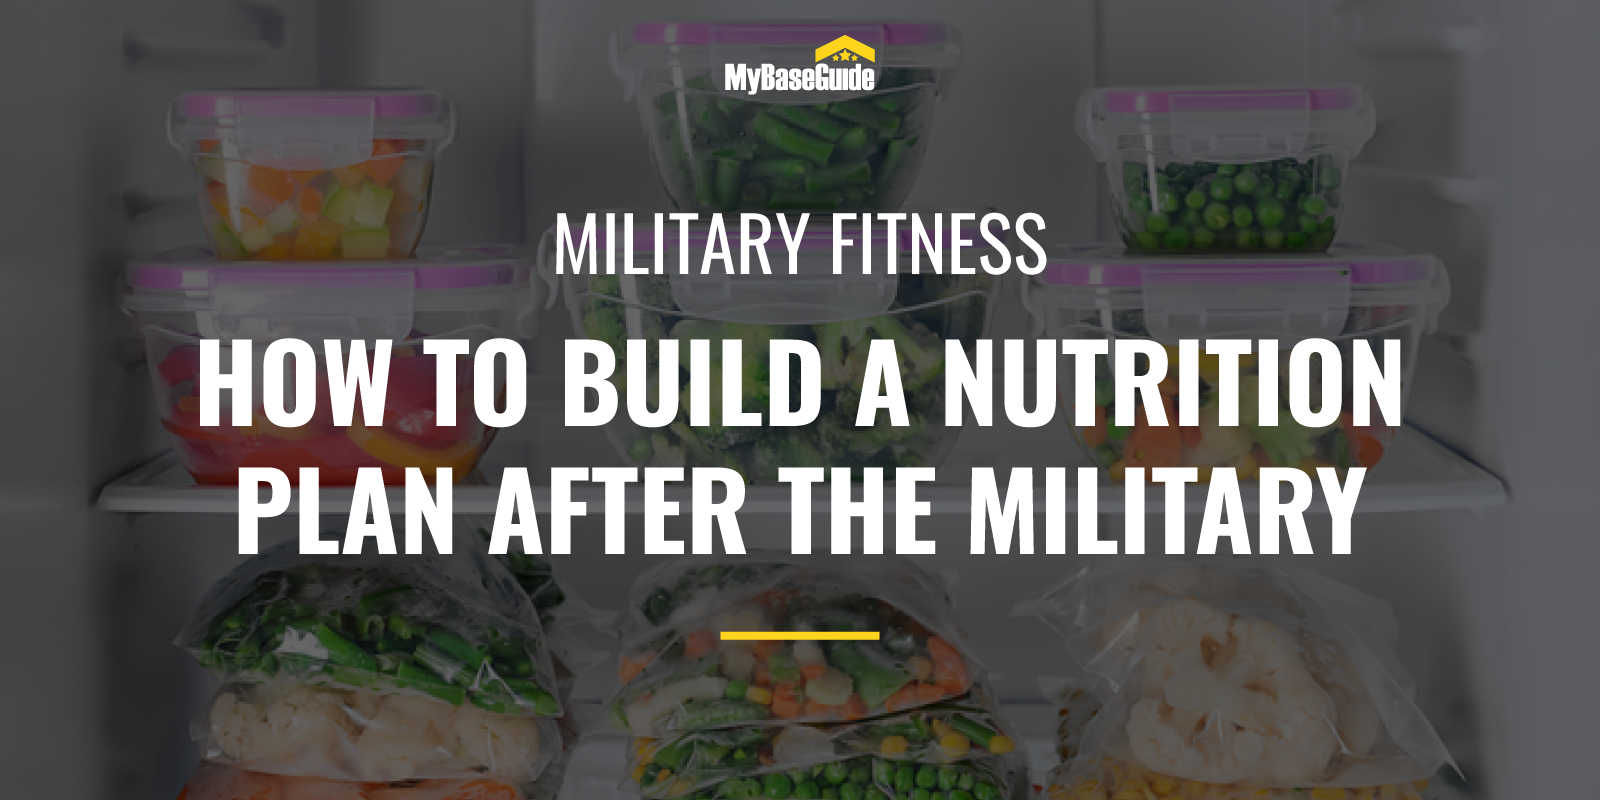 Build a Nutrition Plan